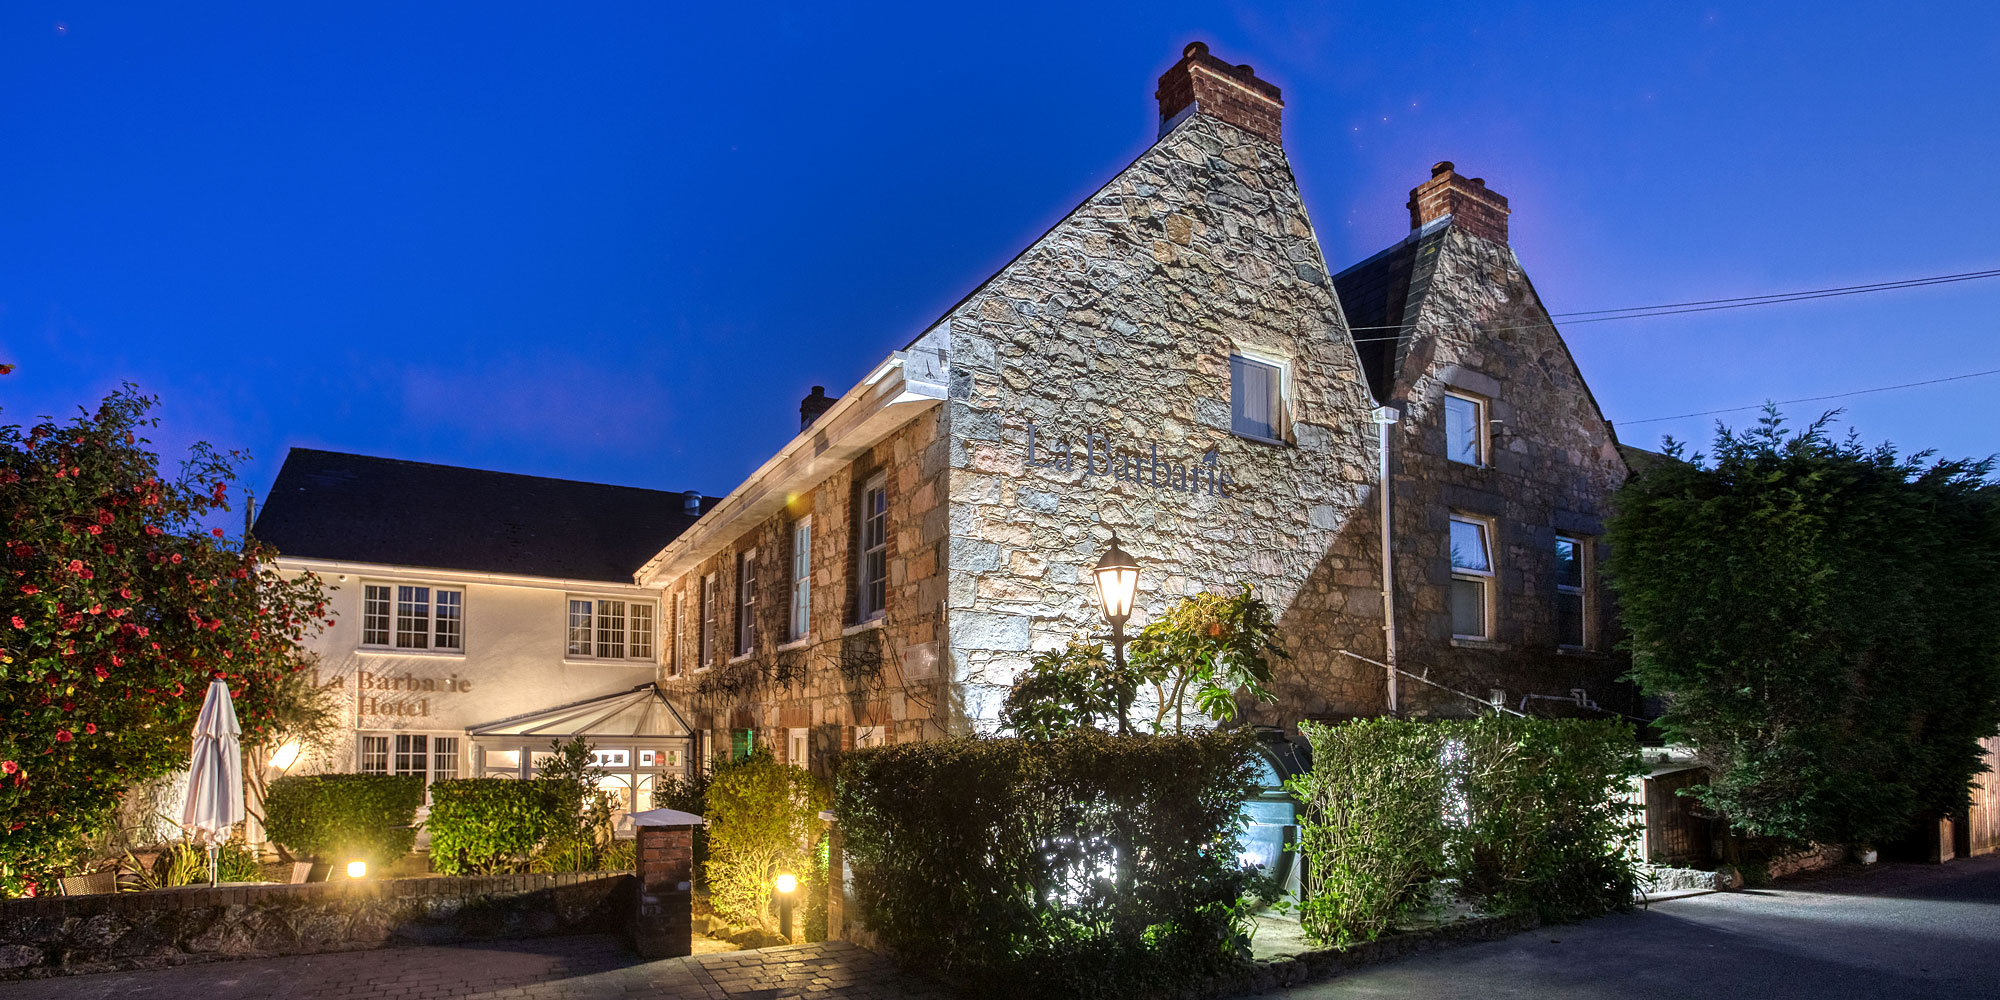 Guernsey country house hotel.